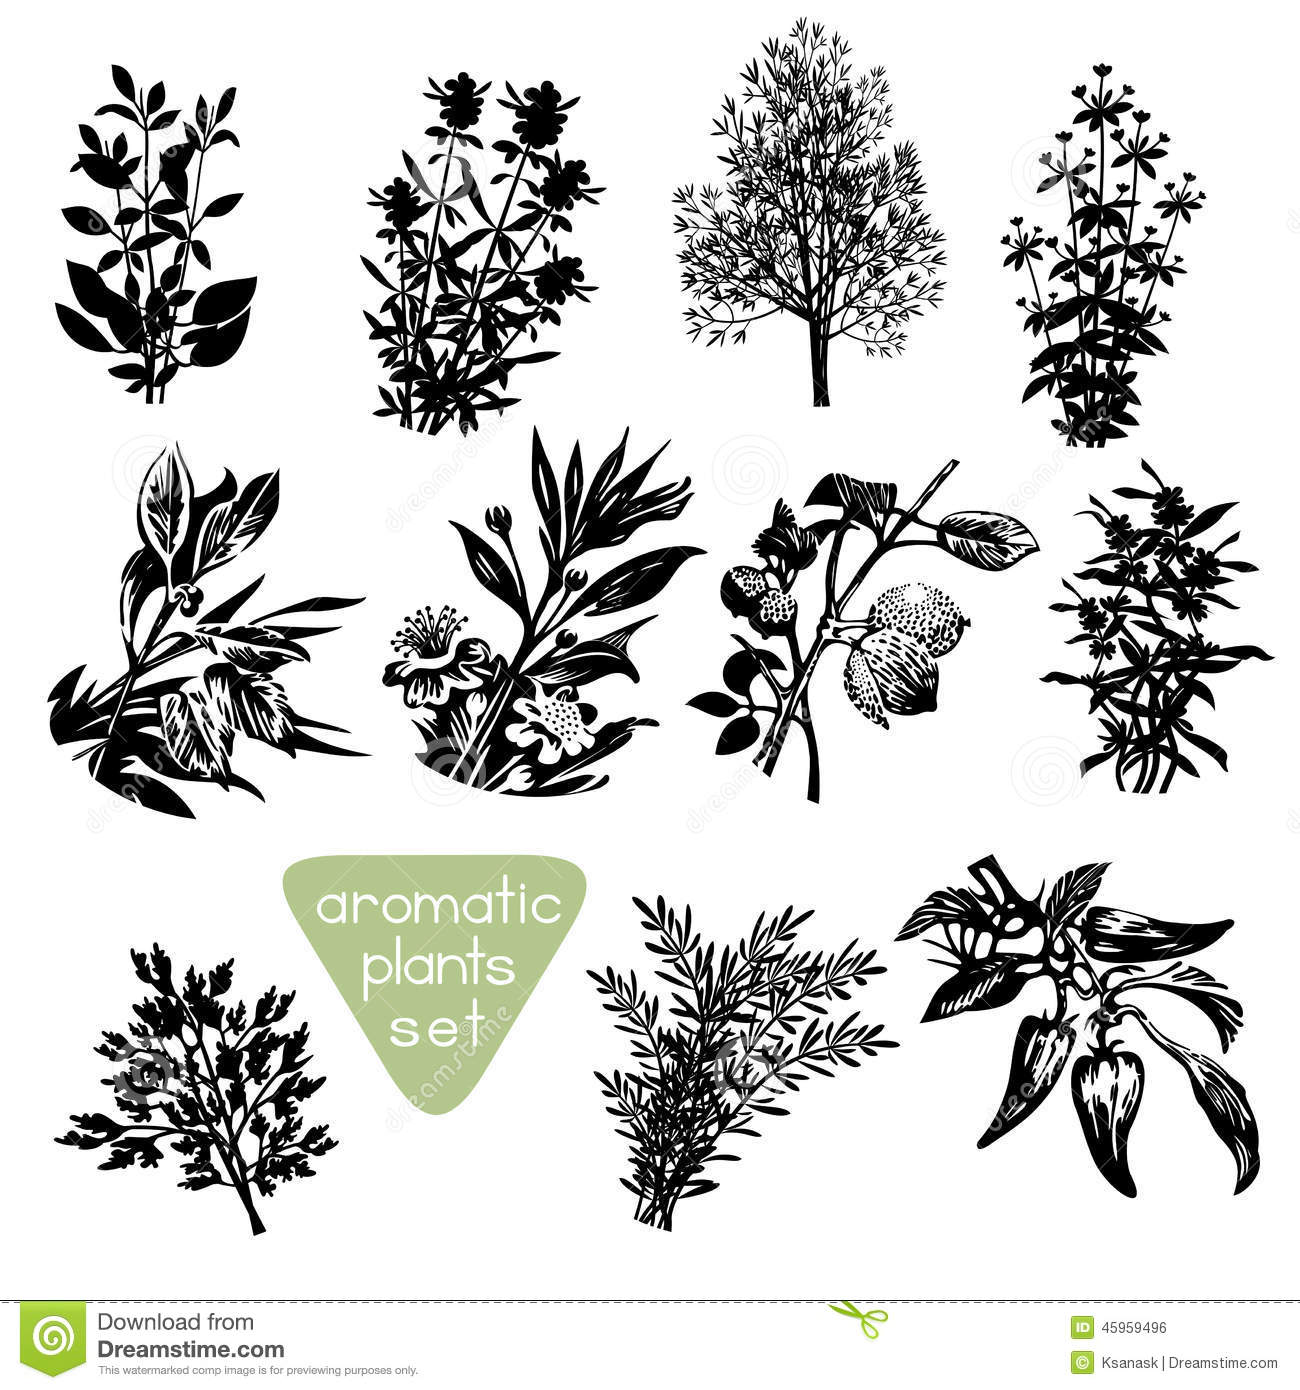 Aromatic Herbs Hand Drawn Silhouettes Stock Vector.